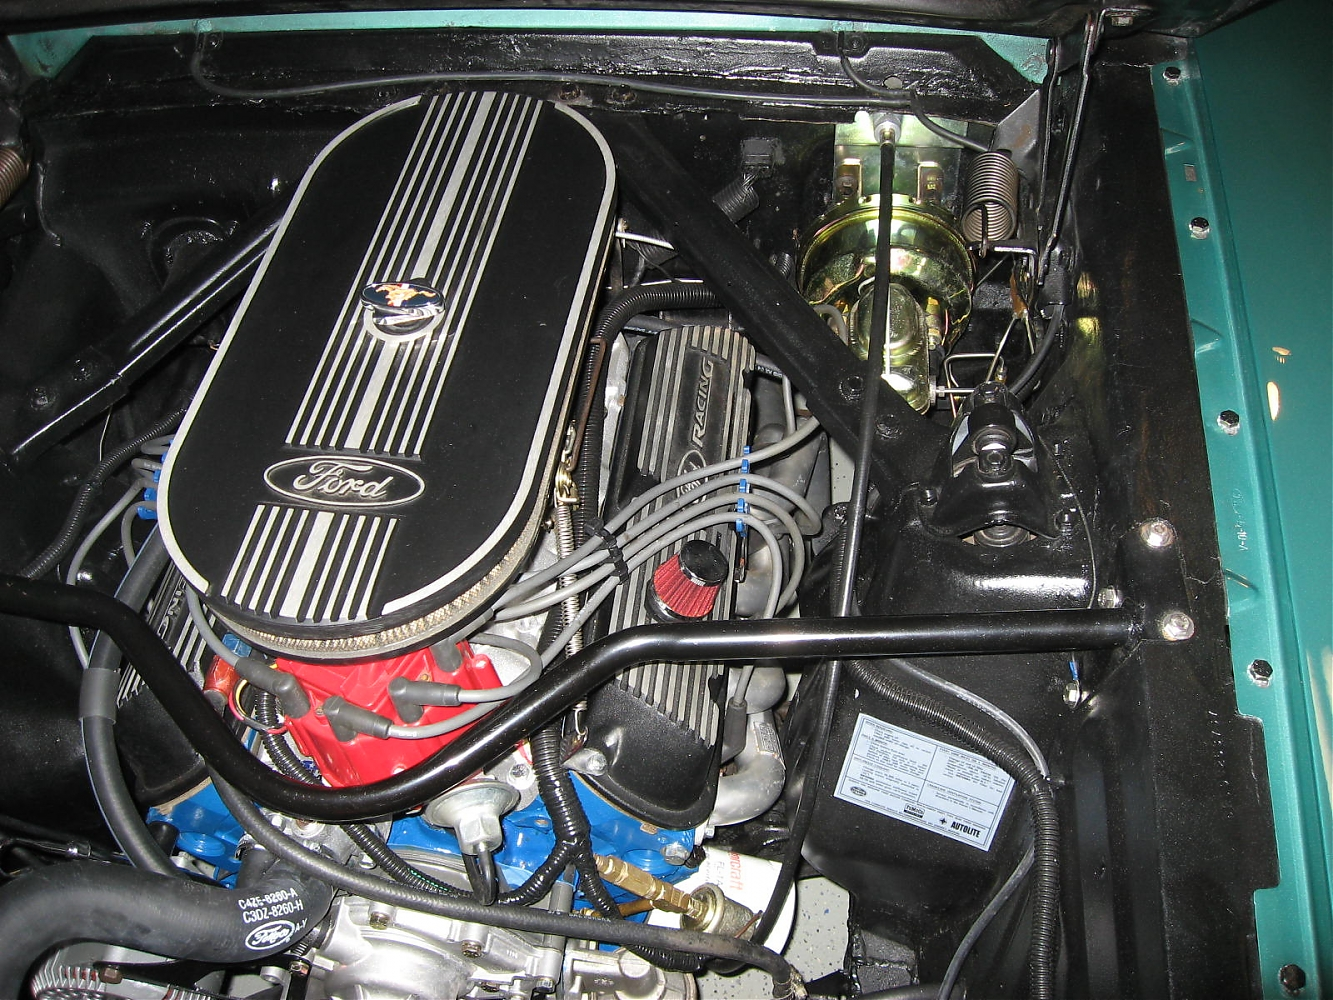 69 Clutch Cable Conversion Ford Muscle Forums Cars Click Image For Larger Versionnamemustang8792powerwindowwiring Version Name Img 3608 Views 6076 Size 114